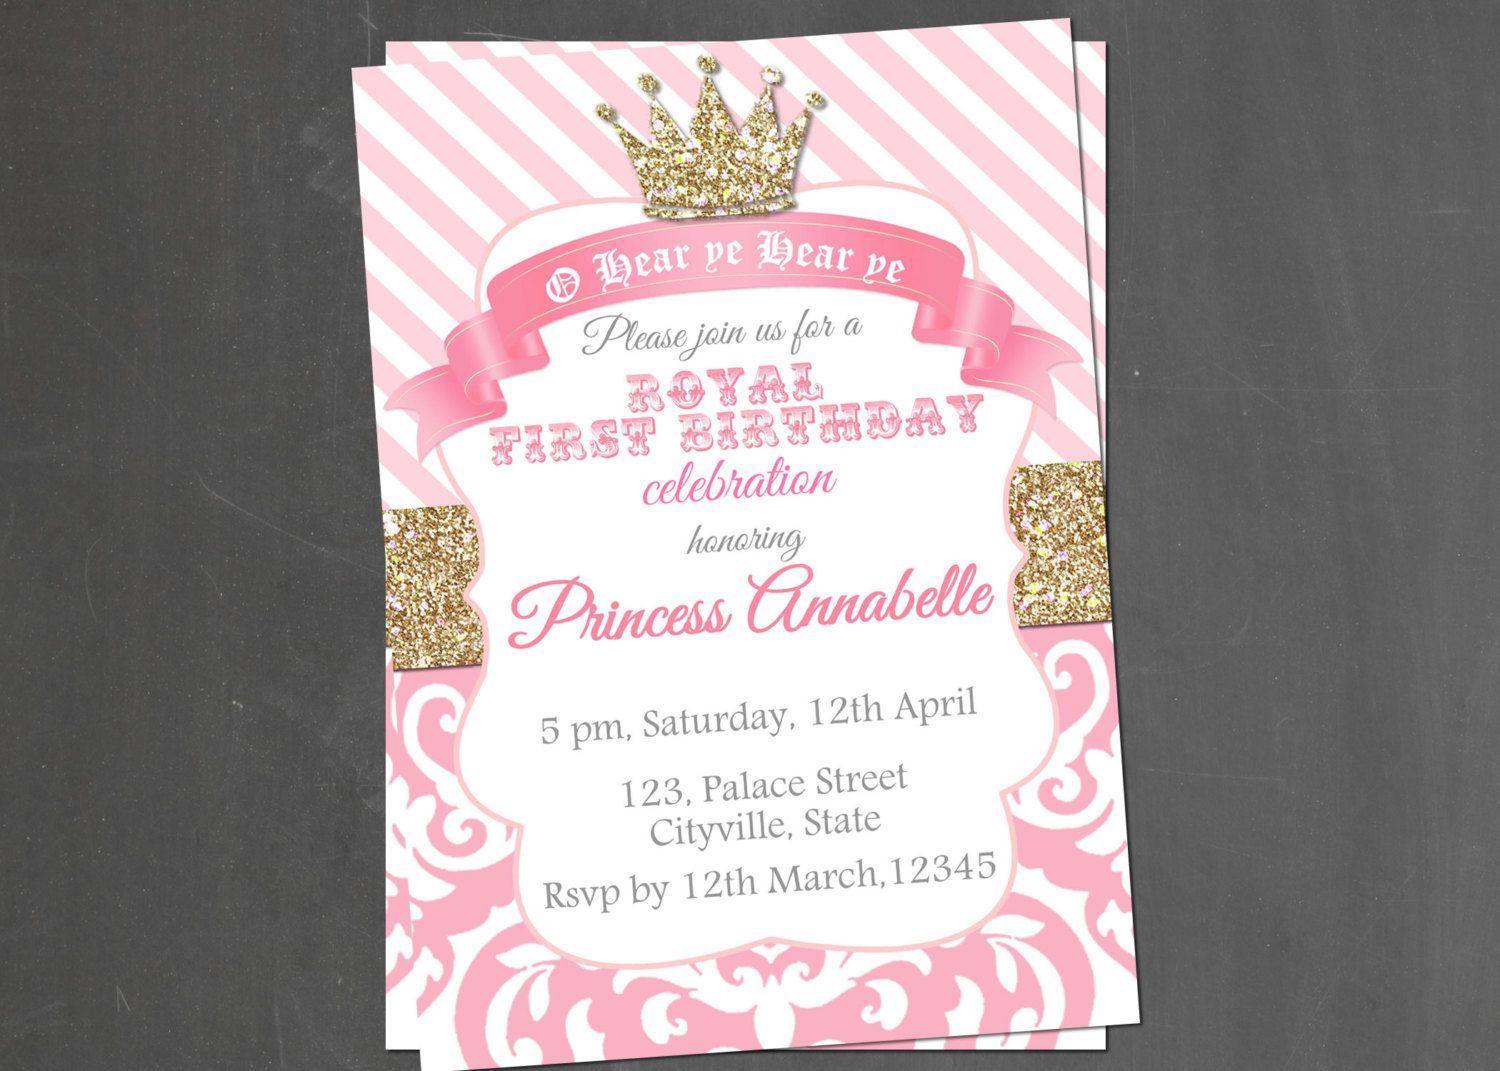 Princess invitation royal princess birthday invites royal princess princess invitation birthday party pink white party printable gold royal crown by littlepinkelephant03 on etsy https stopboris Gallery